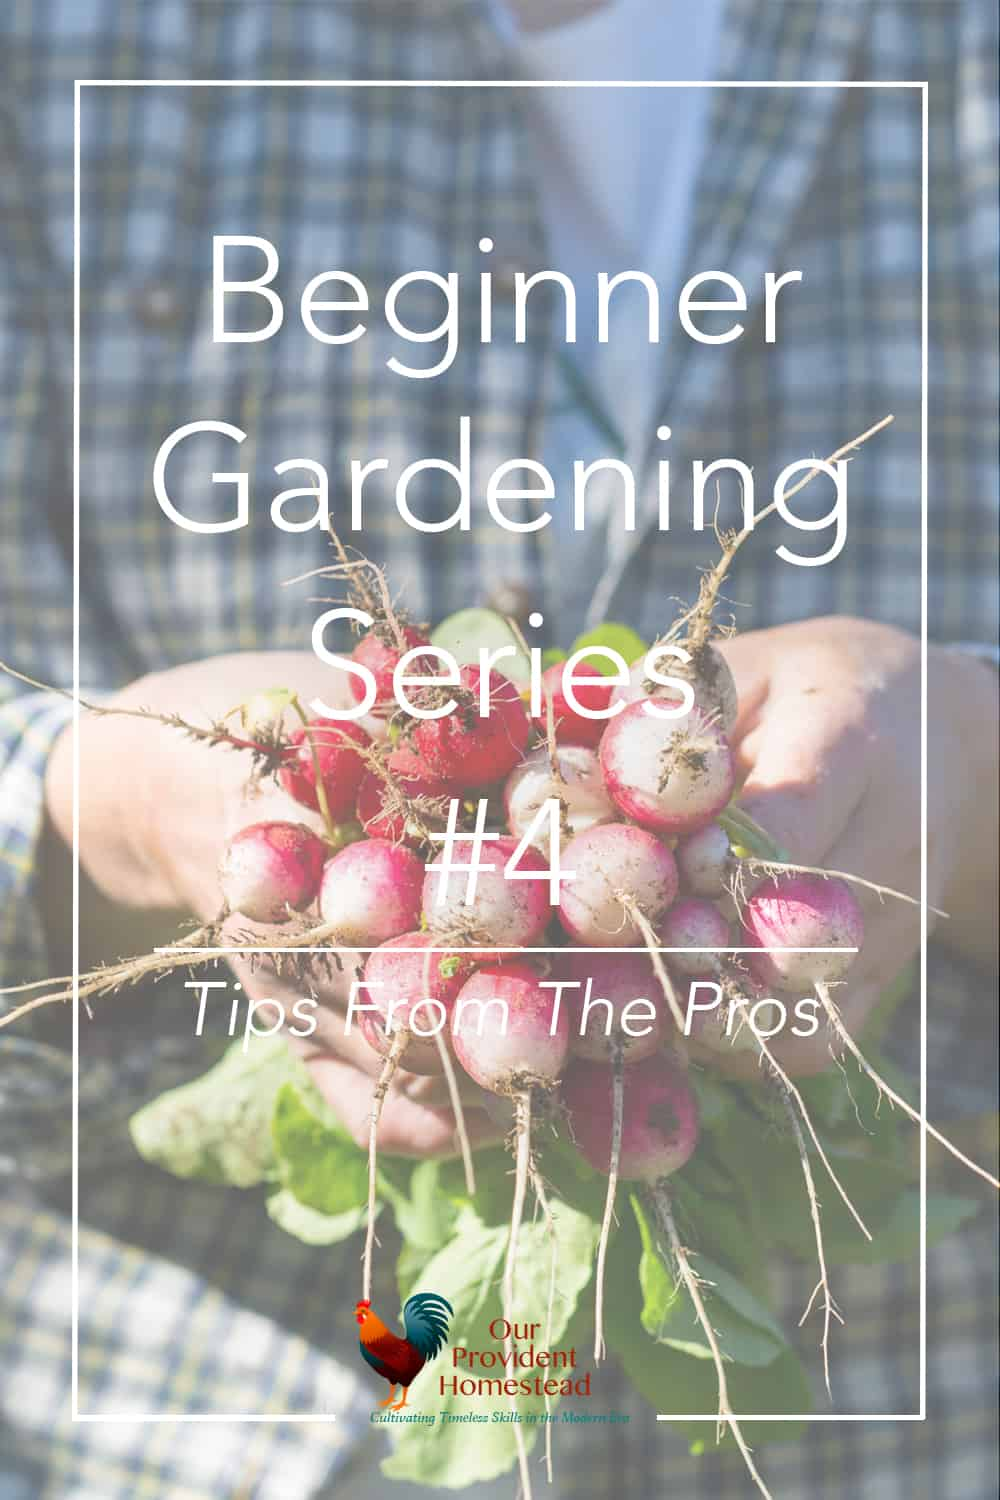 Are you new to gardening? Our beginner gardening series will help answer your questions, including tips from the pros. Beginner Gardening | Tips From The Pros | Gardening Advice